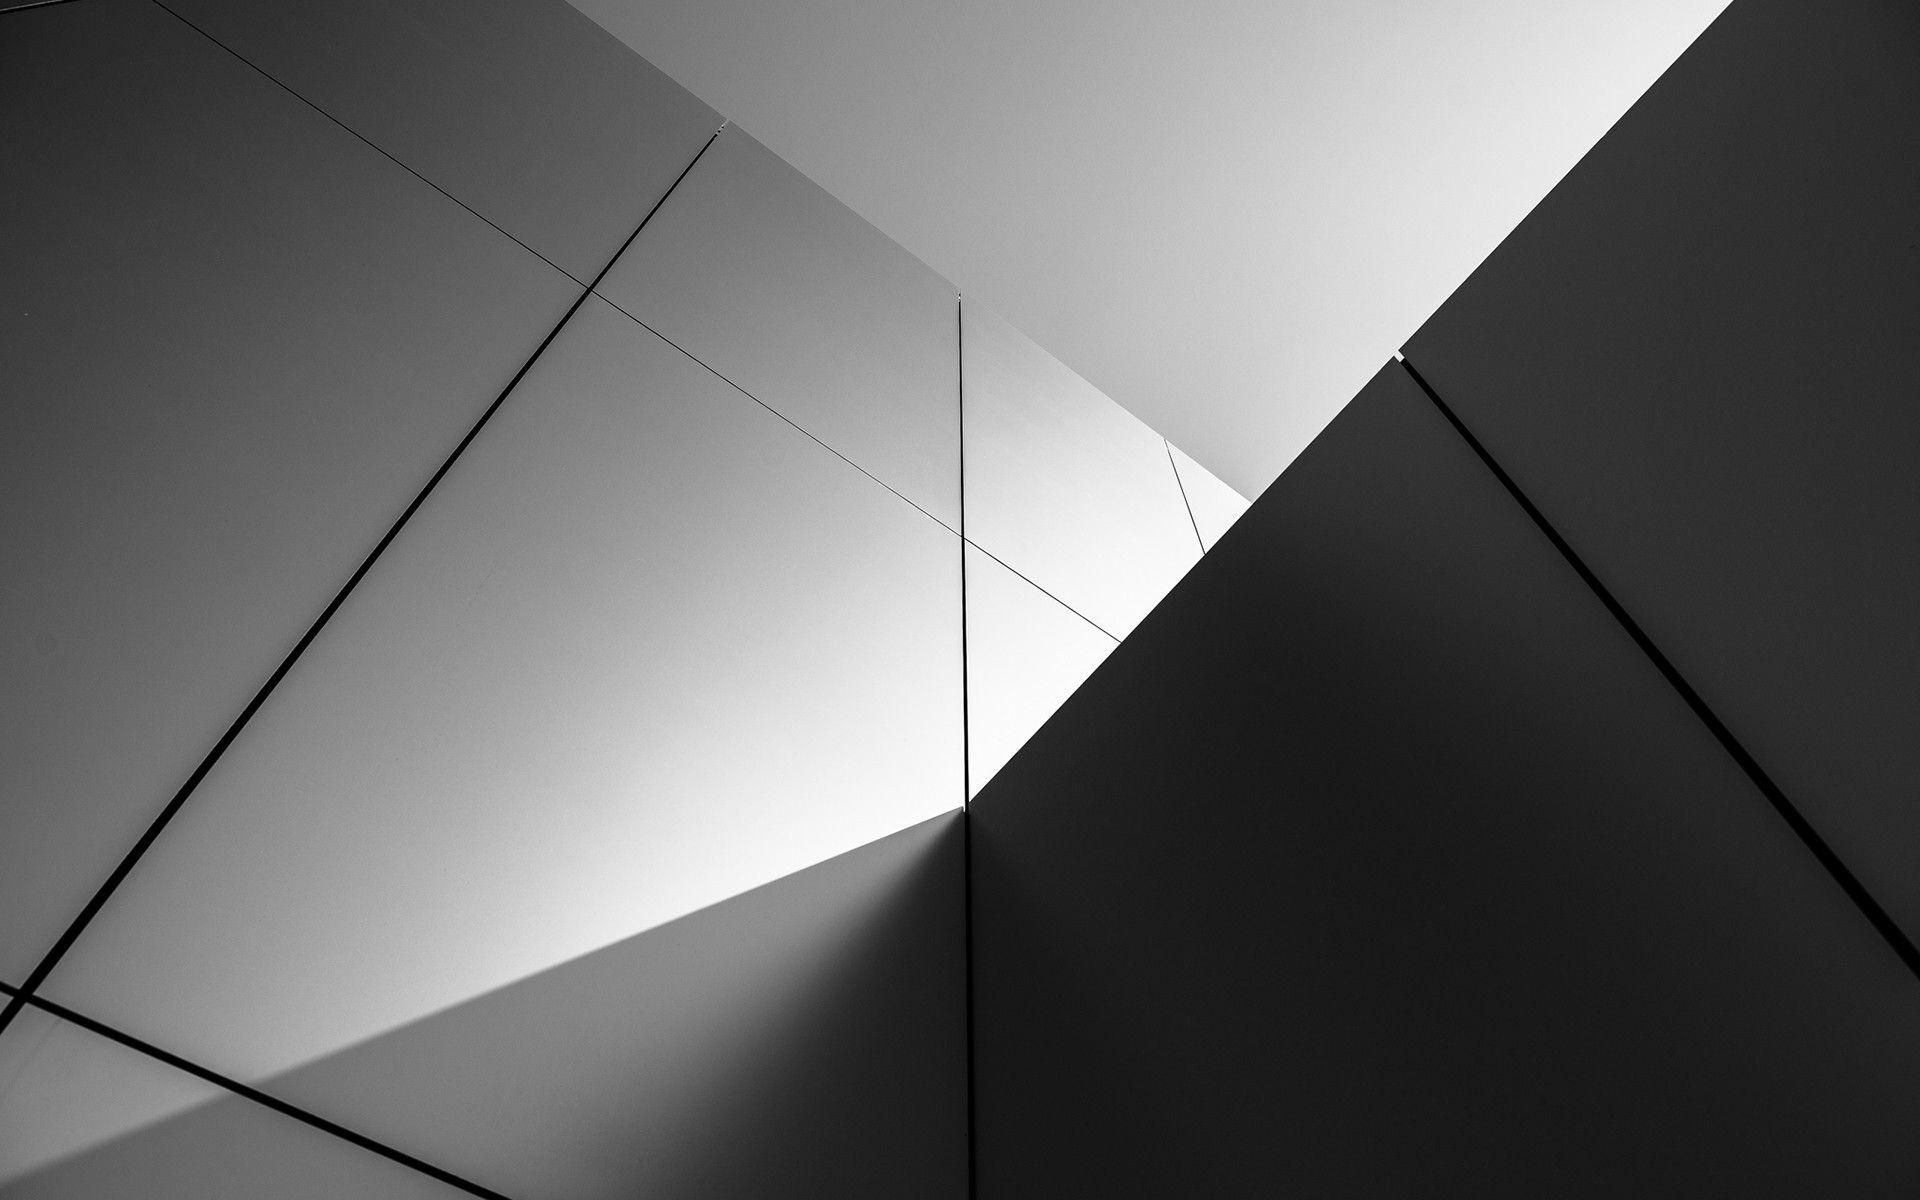 Black And White Abstract Desktop Wallpaper